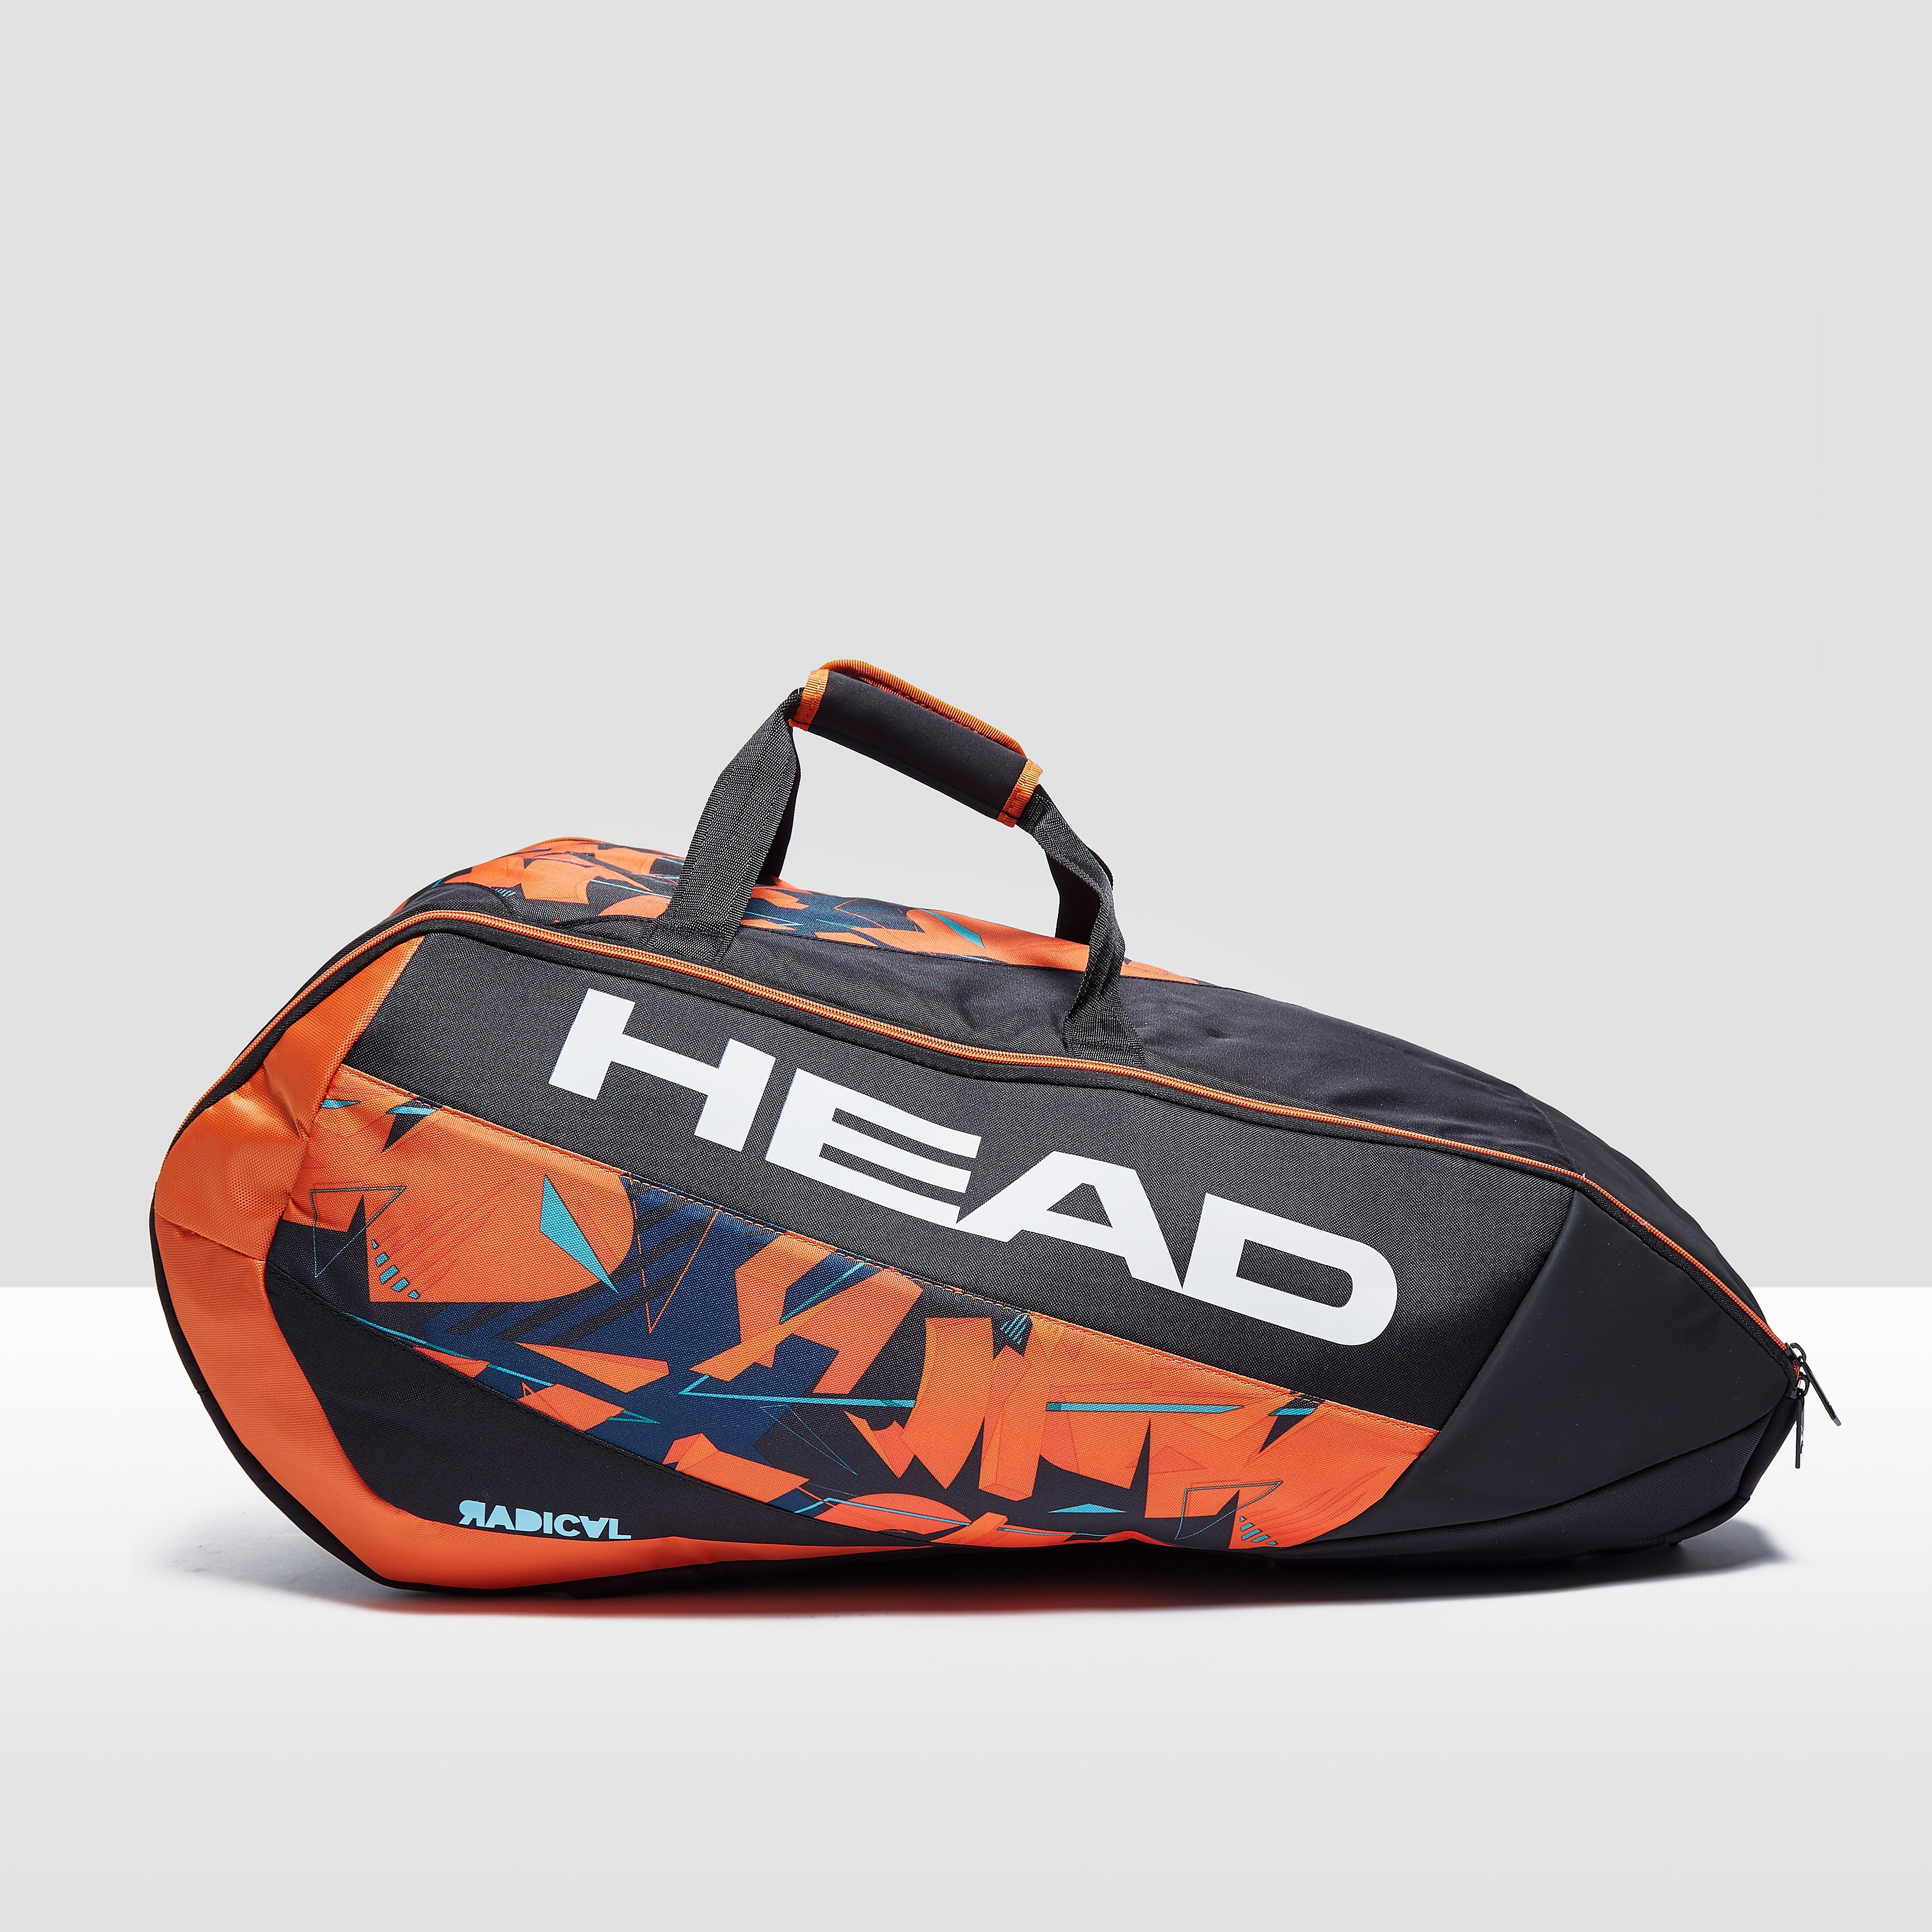 Head Radical 9R Supercombi Racketbag